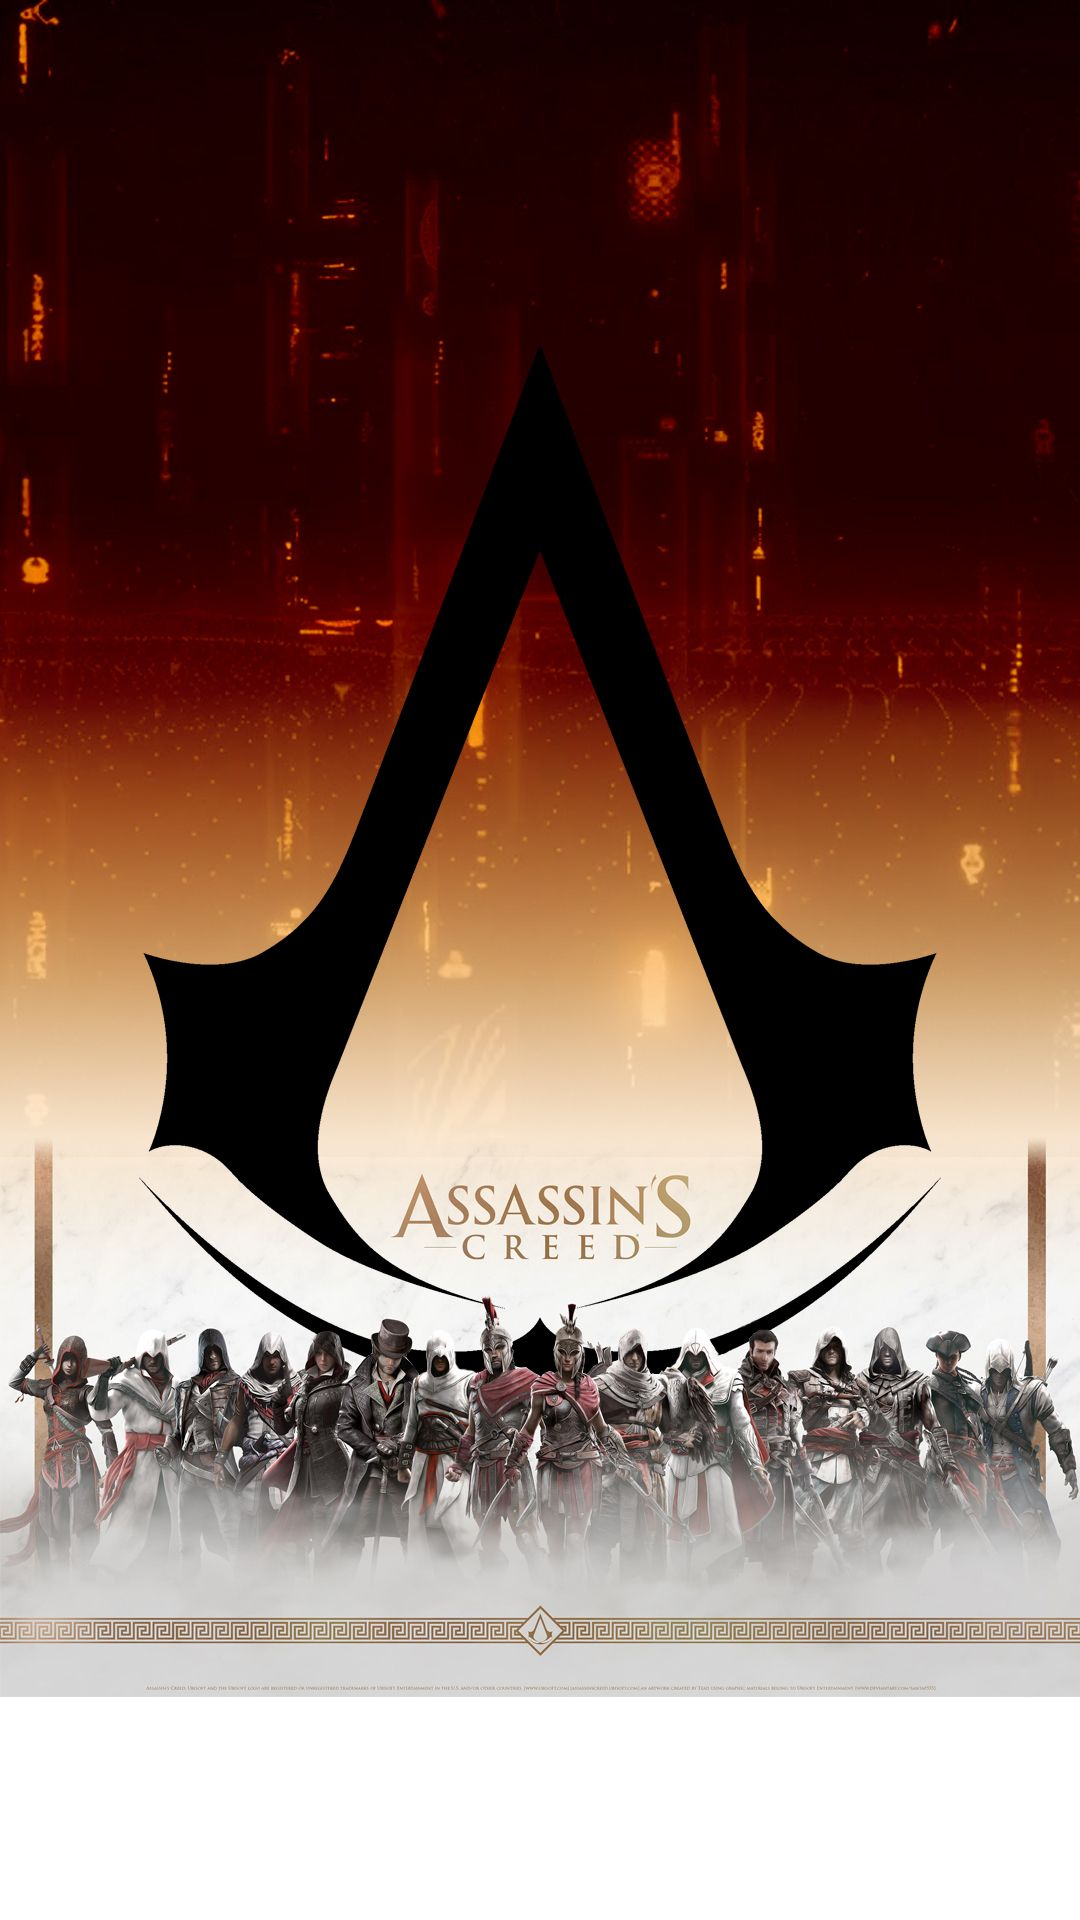 Assassins S Creed Odyssey Inspired Wallpaper For The Iphone 8